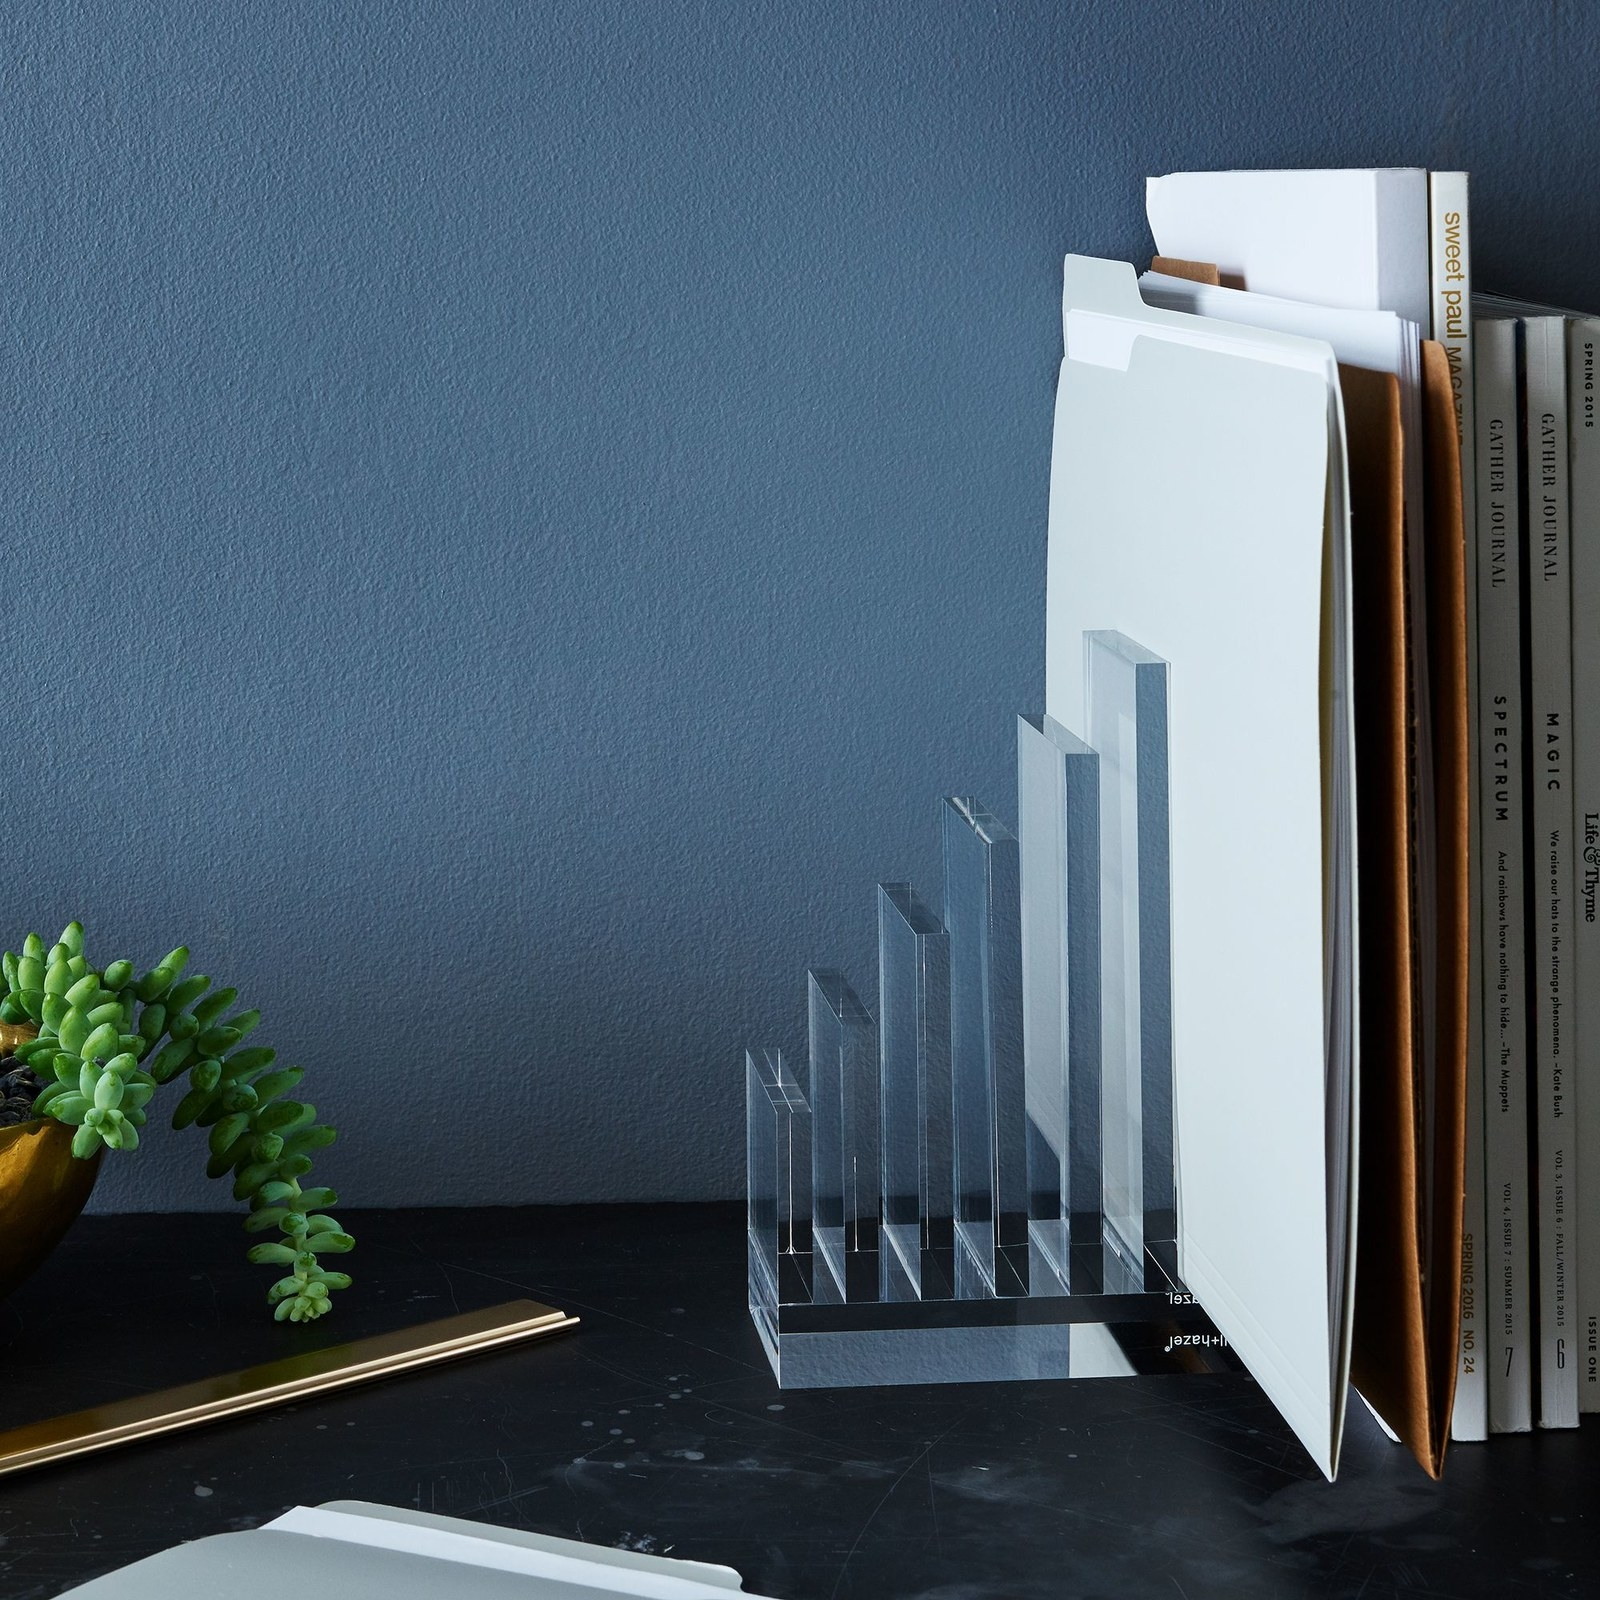 Collator bookend in acrylic material holding files and magazines